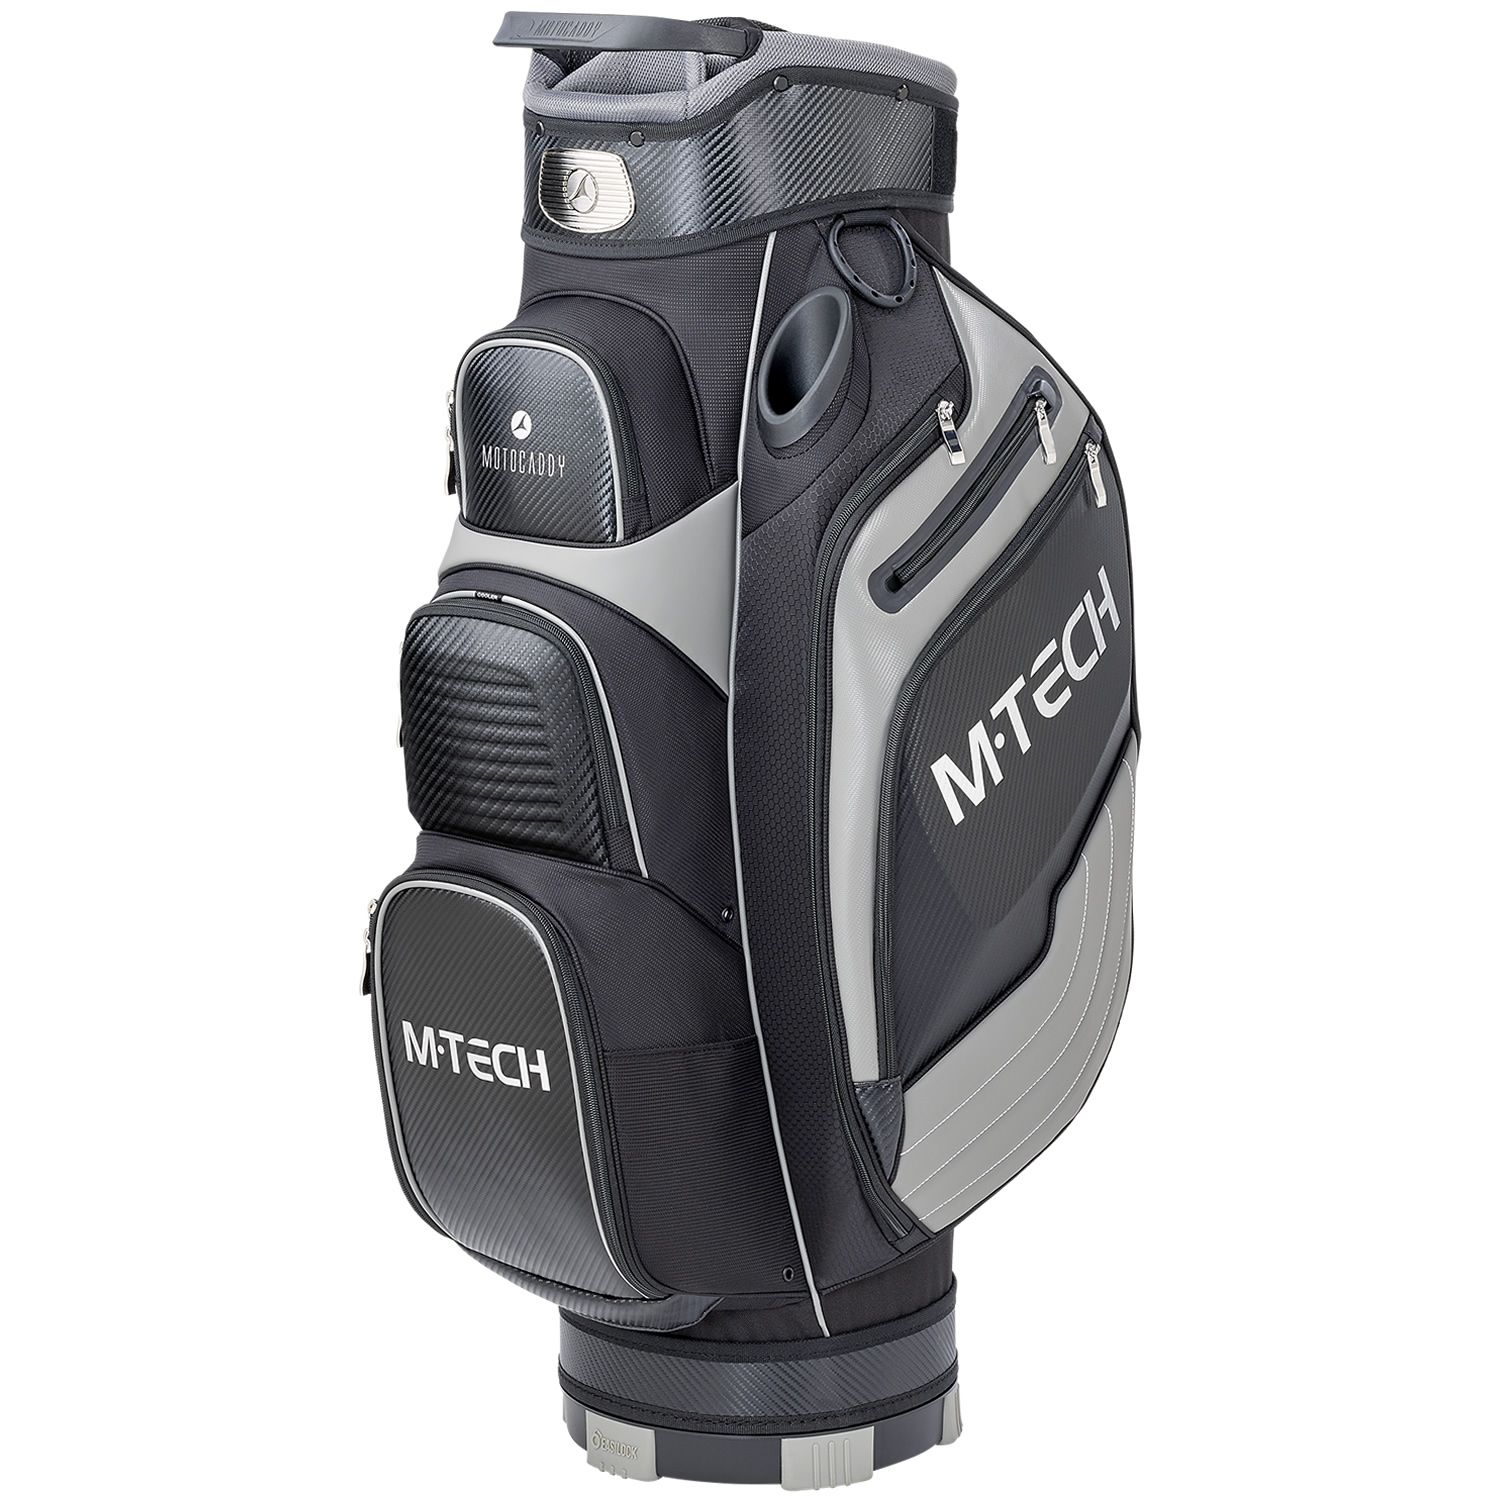 Motocaddy 2020 M-TECH Golf Cart Bag